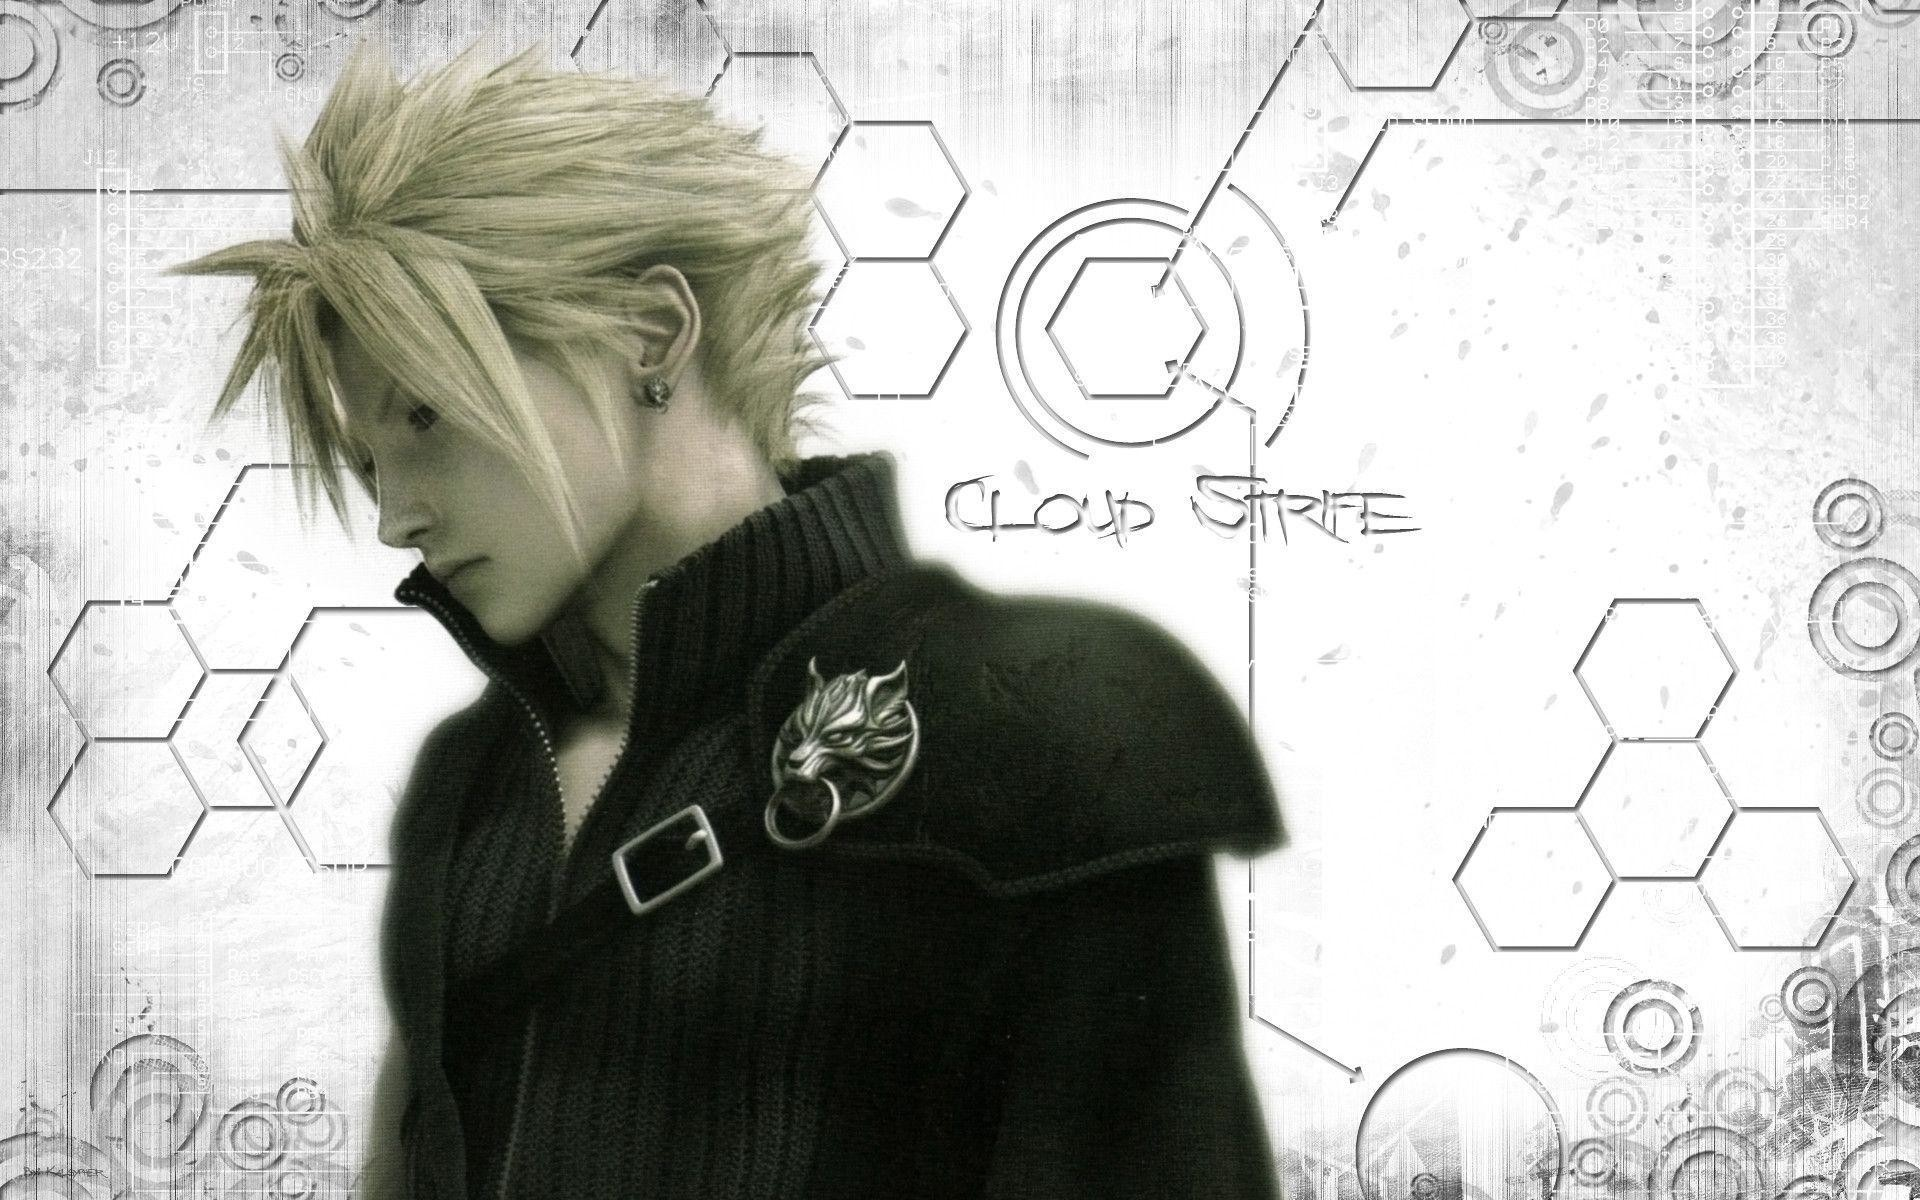 Cloud Strife Wallpapers Hd Wallpaper Collections 4kwallpaper Wiki